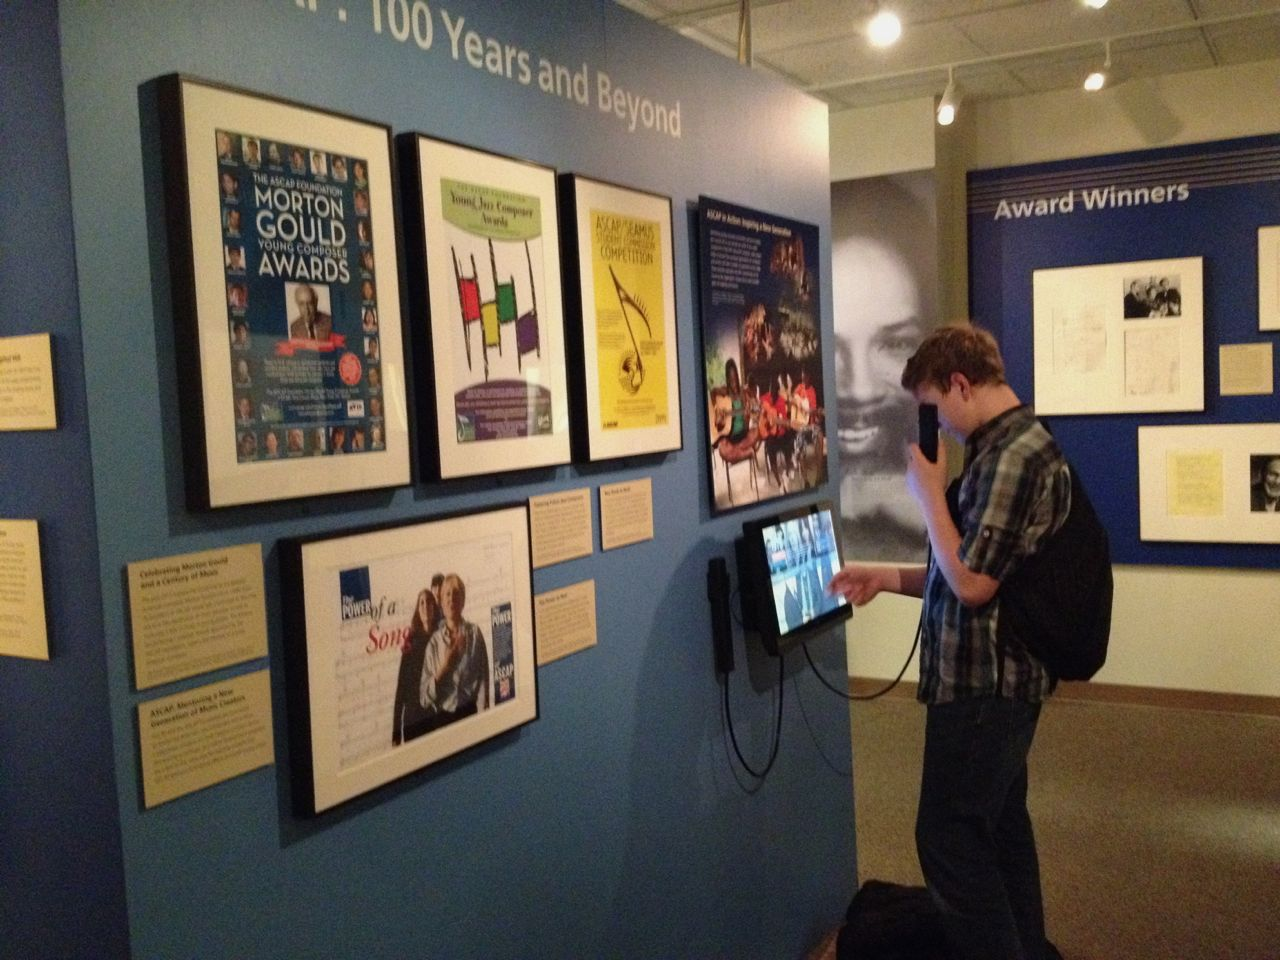 Library of Congress - exhibit celebrating the 100th anniversary of the American Society of Composers, Authors, and Publishers